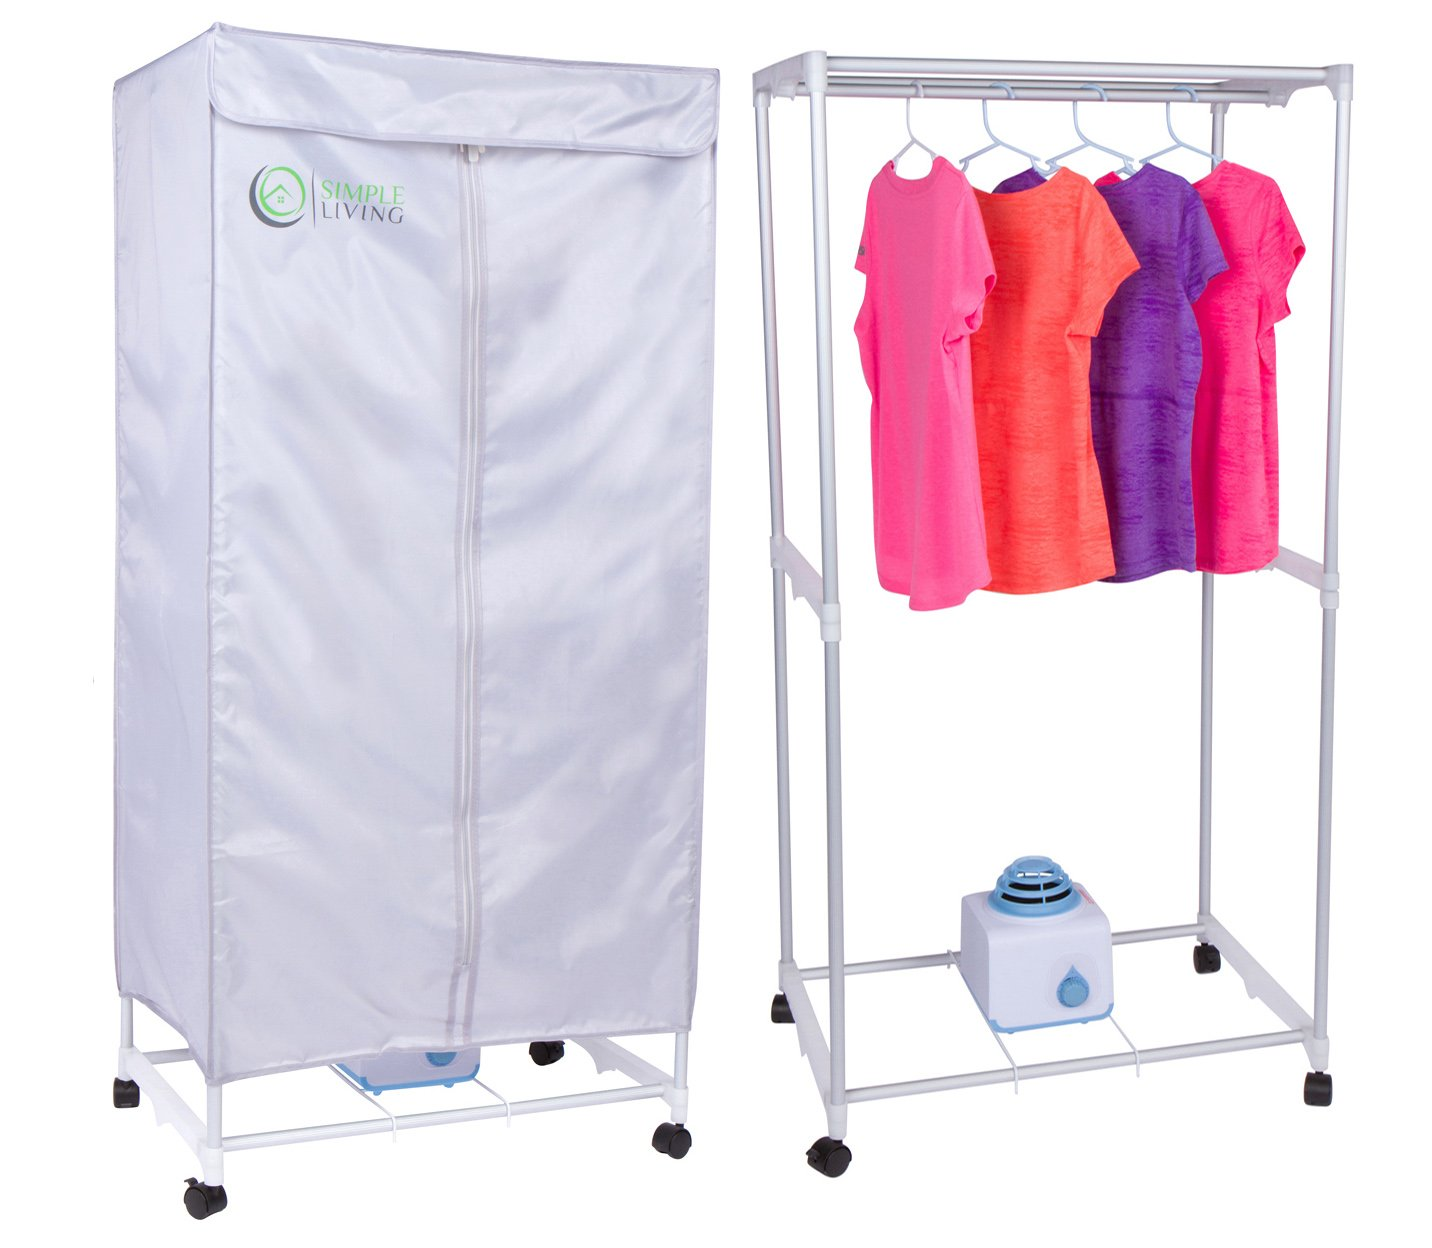 Simple Living Electric Portable Clothes Drying Rack   Compact Wardrobe Dryer  Uses Only 1000 Watts. Dries Clothes Within 30 Minutes.